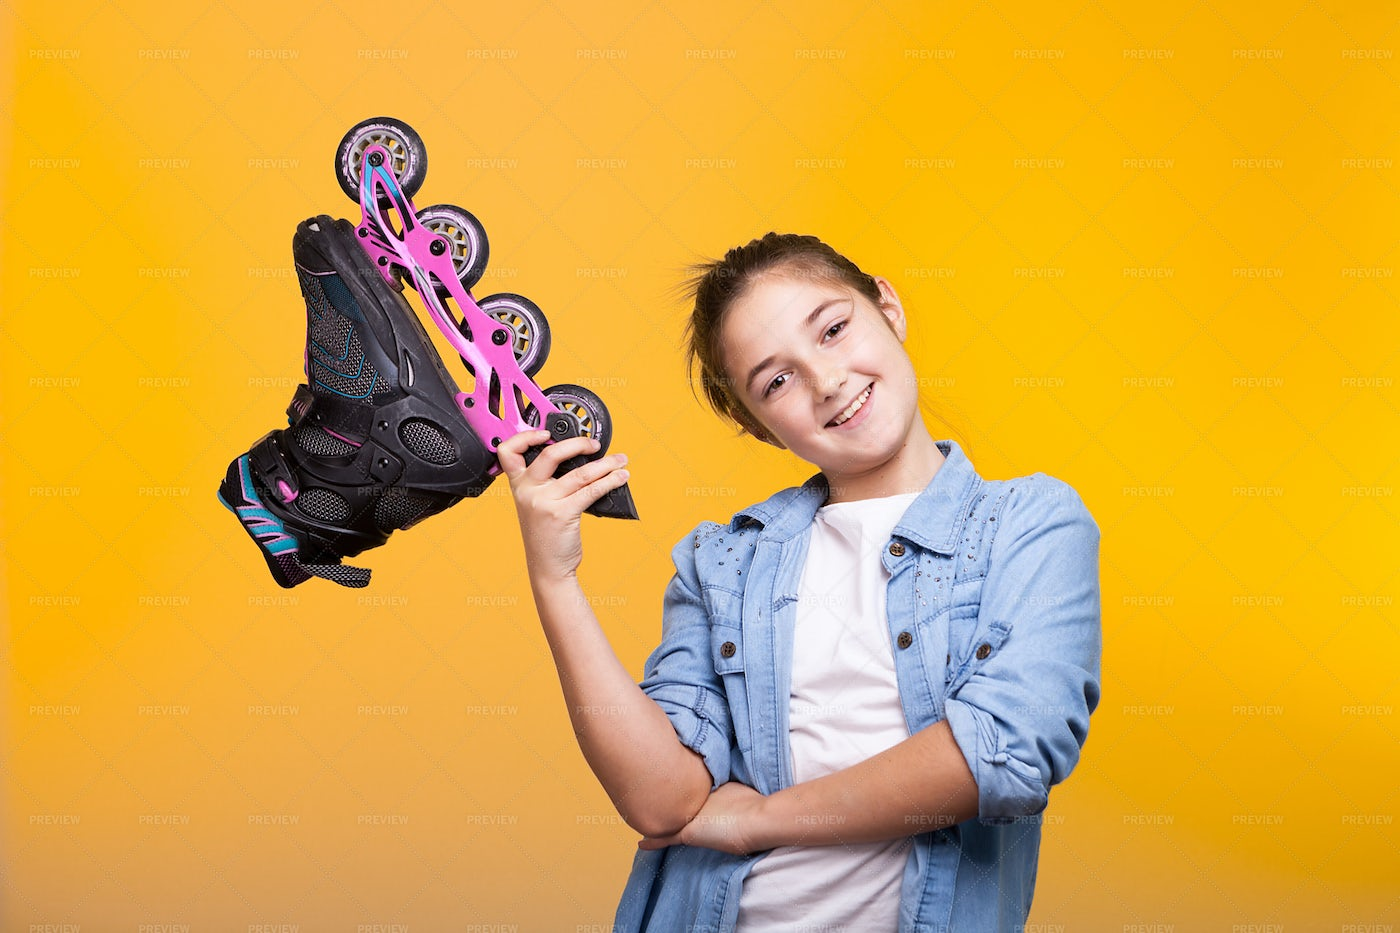 Happy Kid Holding A Roller Skate: Stock Photos